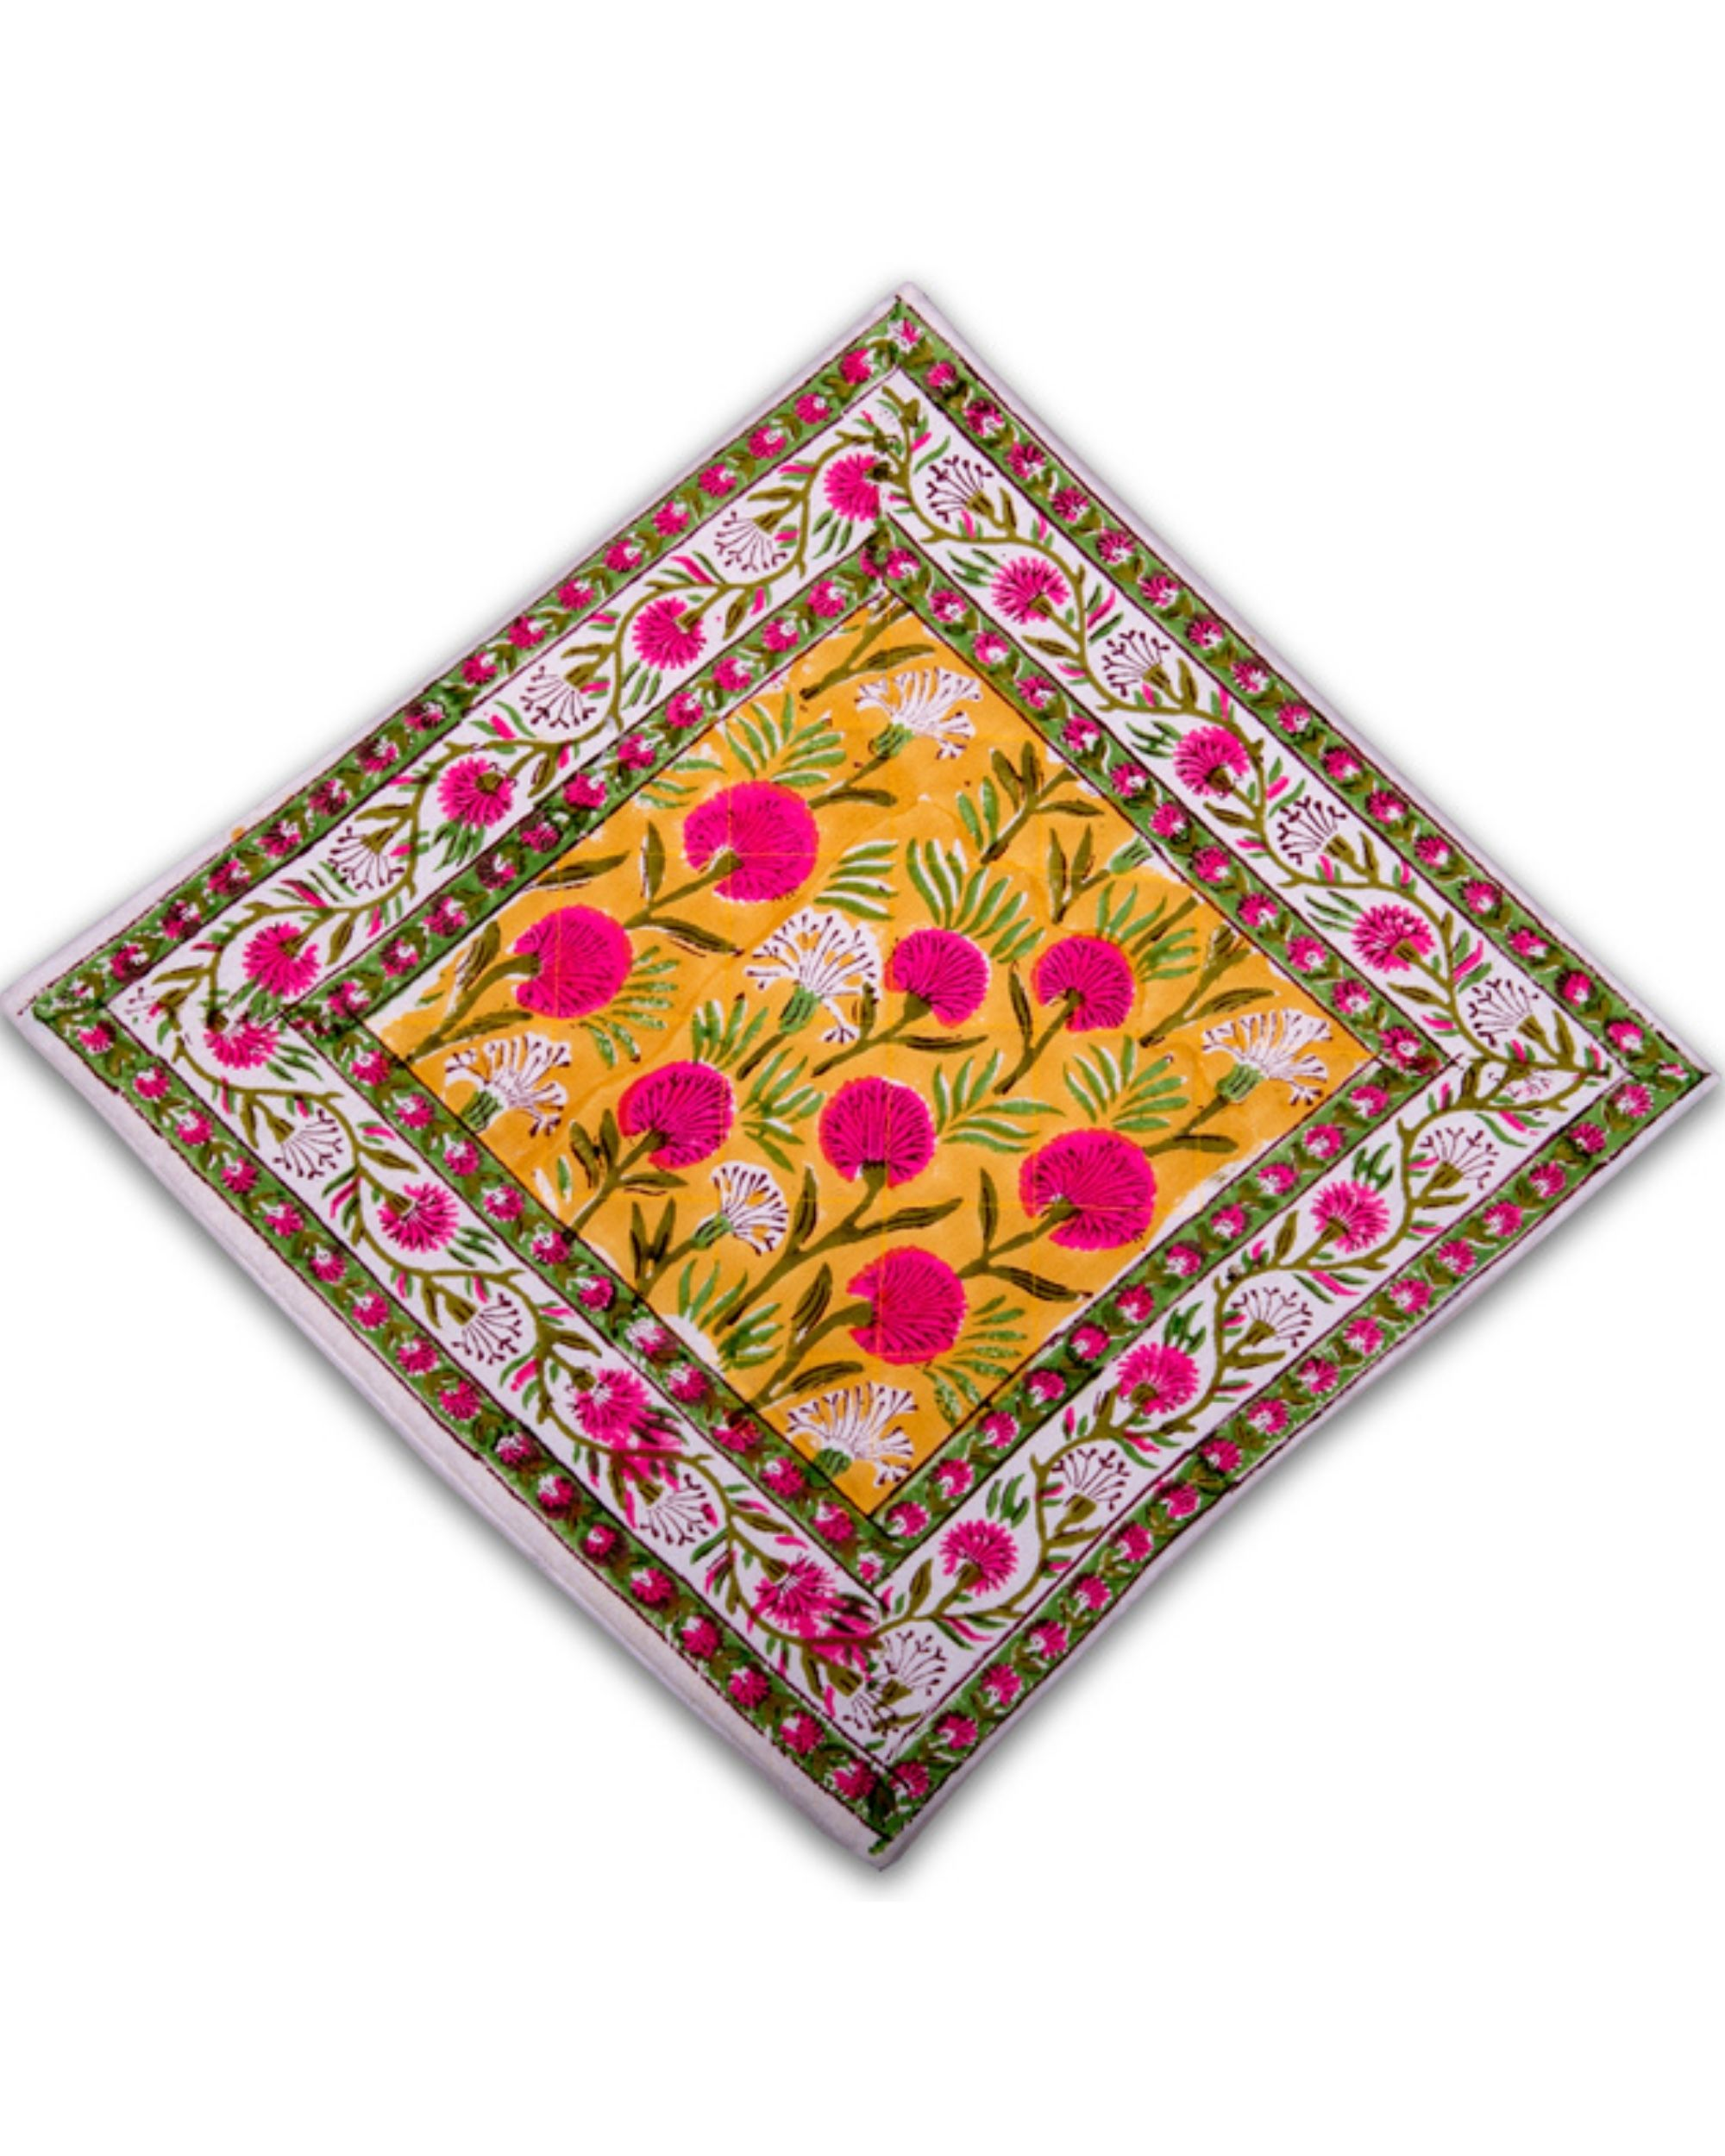 Yellow and pink floral printed quilted cushion covers - set of 2